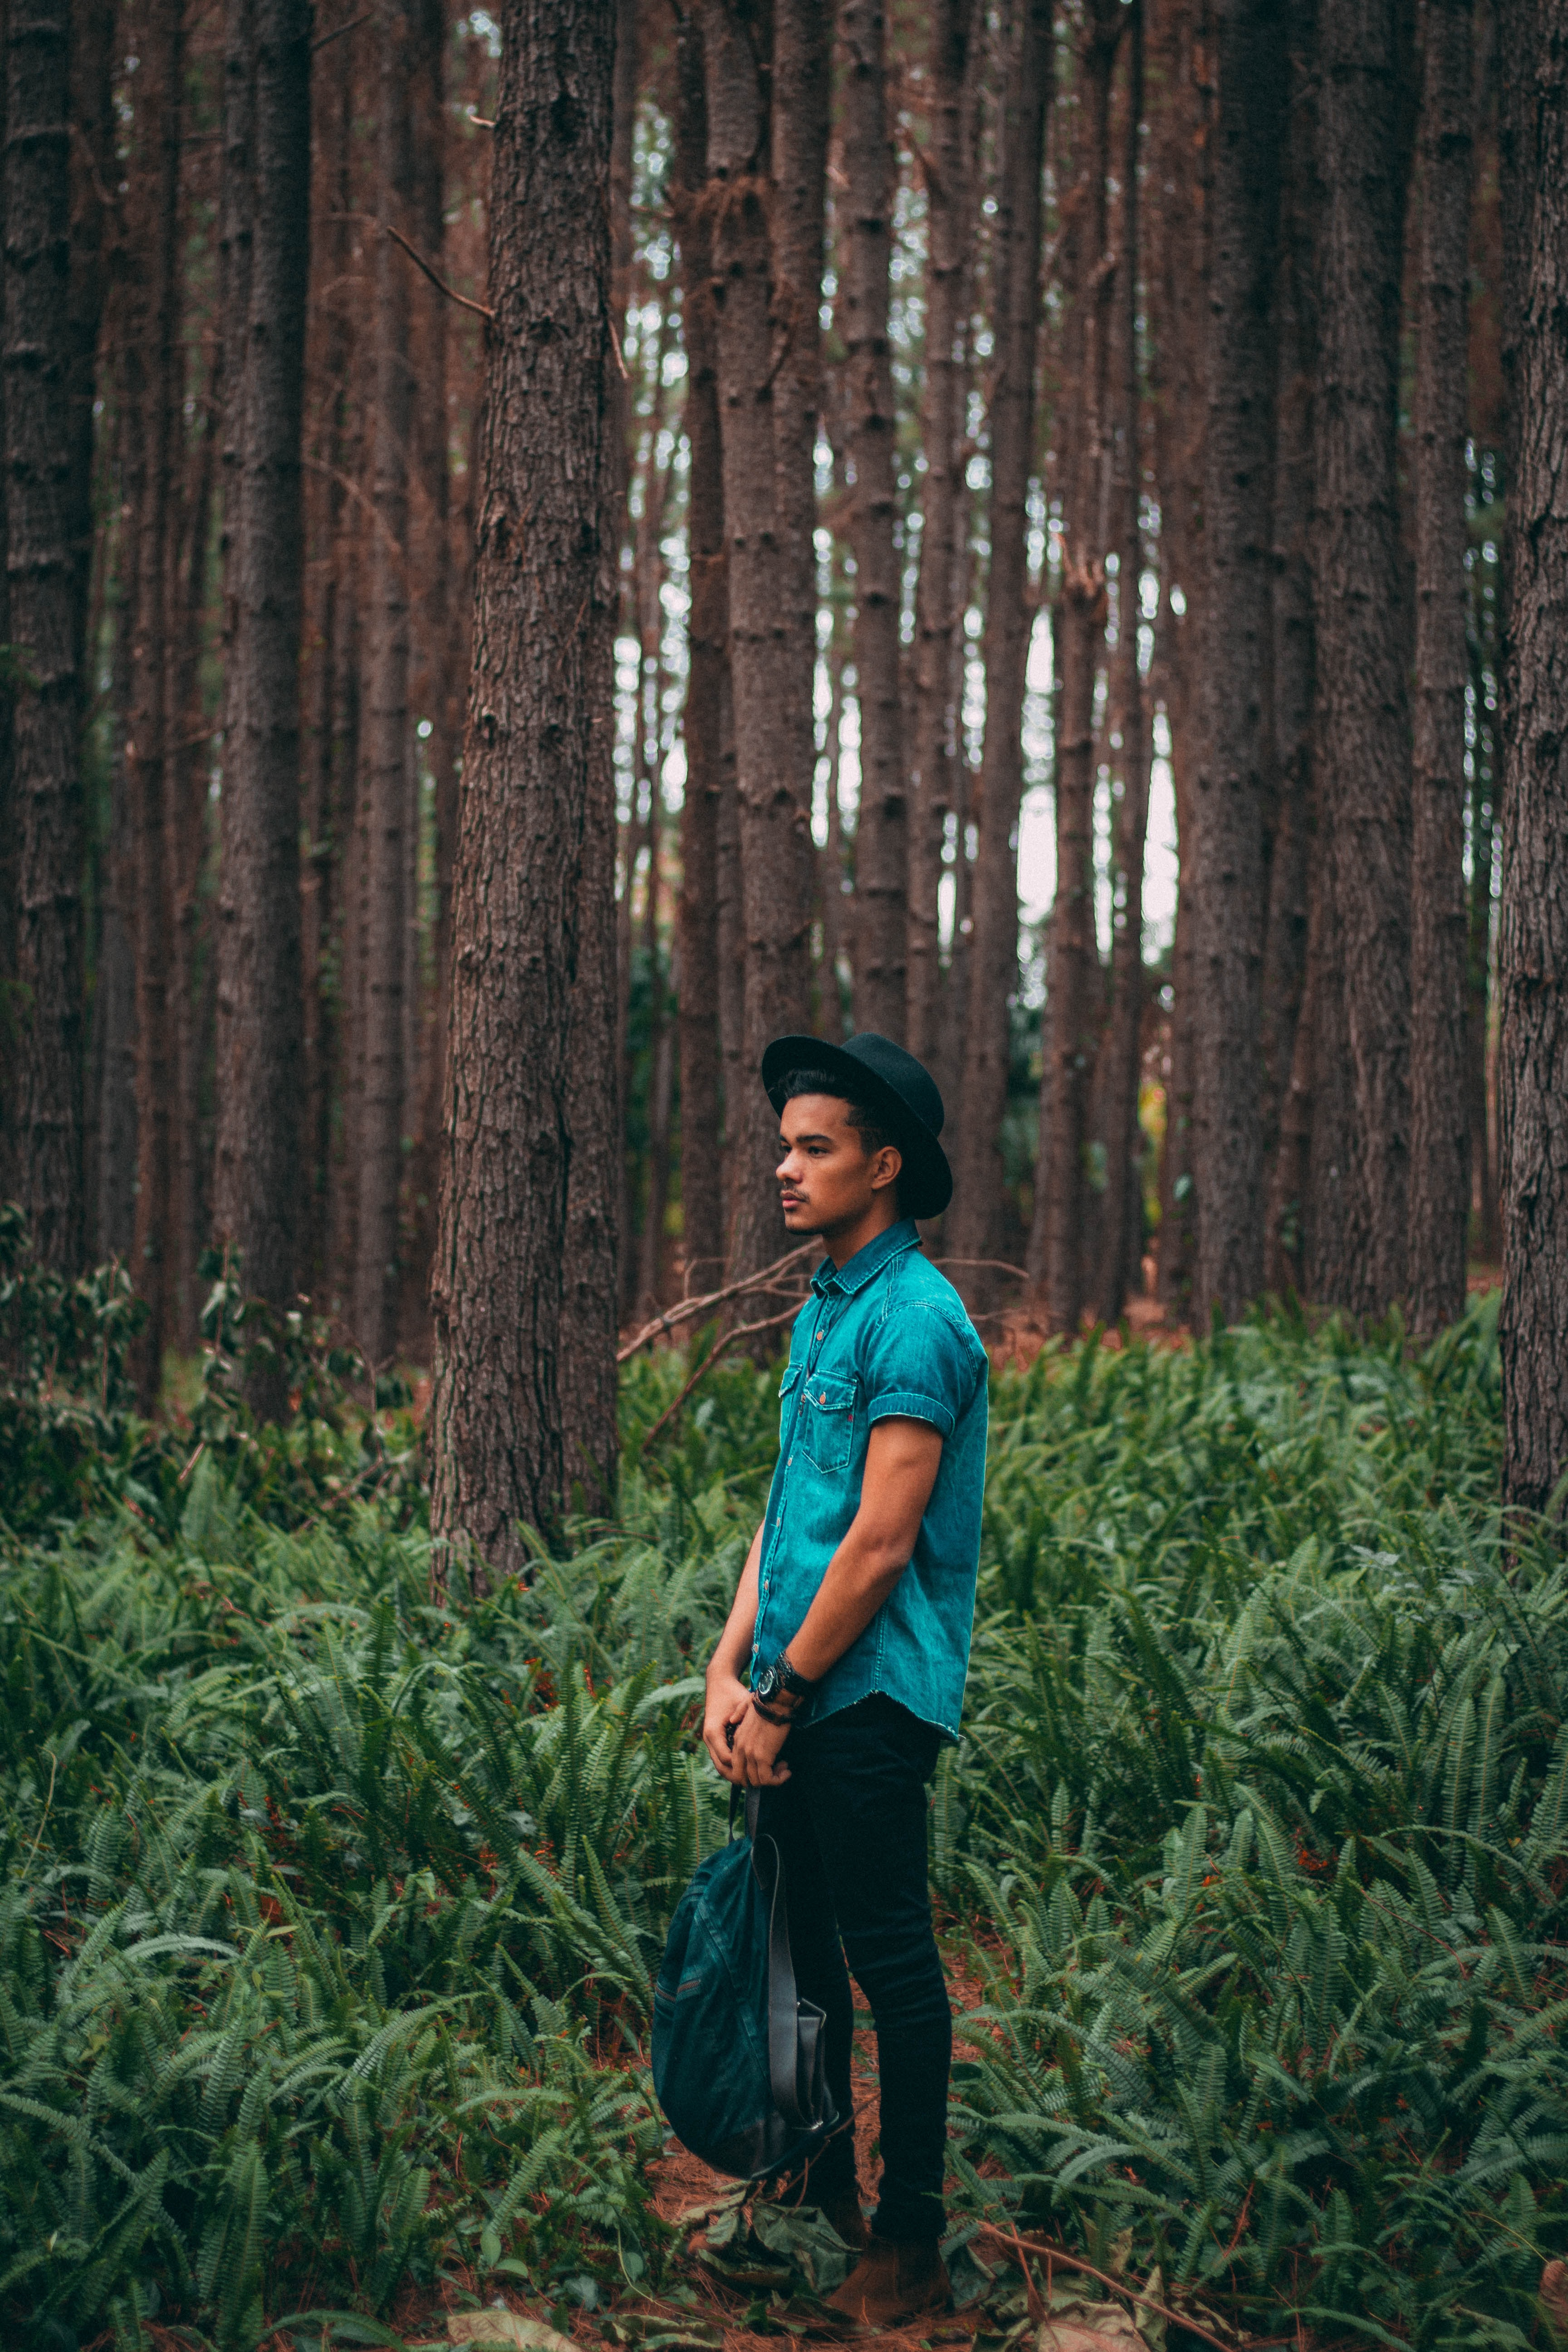 man standing in the middle of forest during daytime